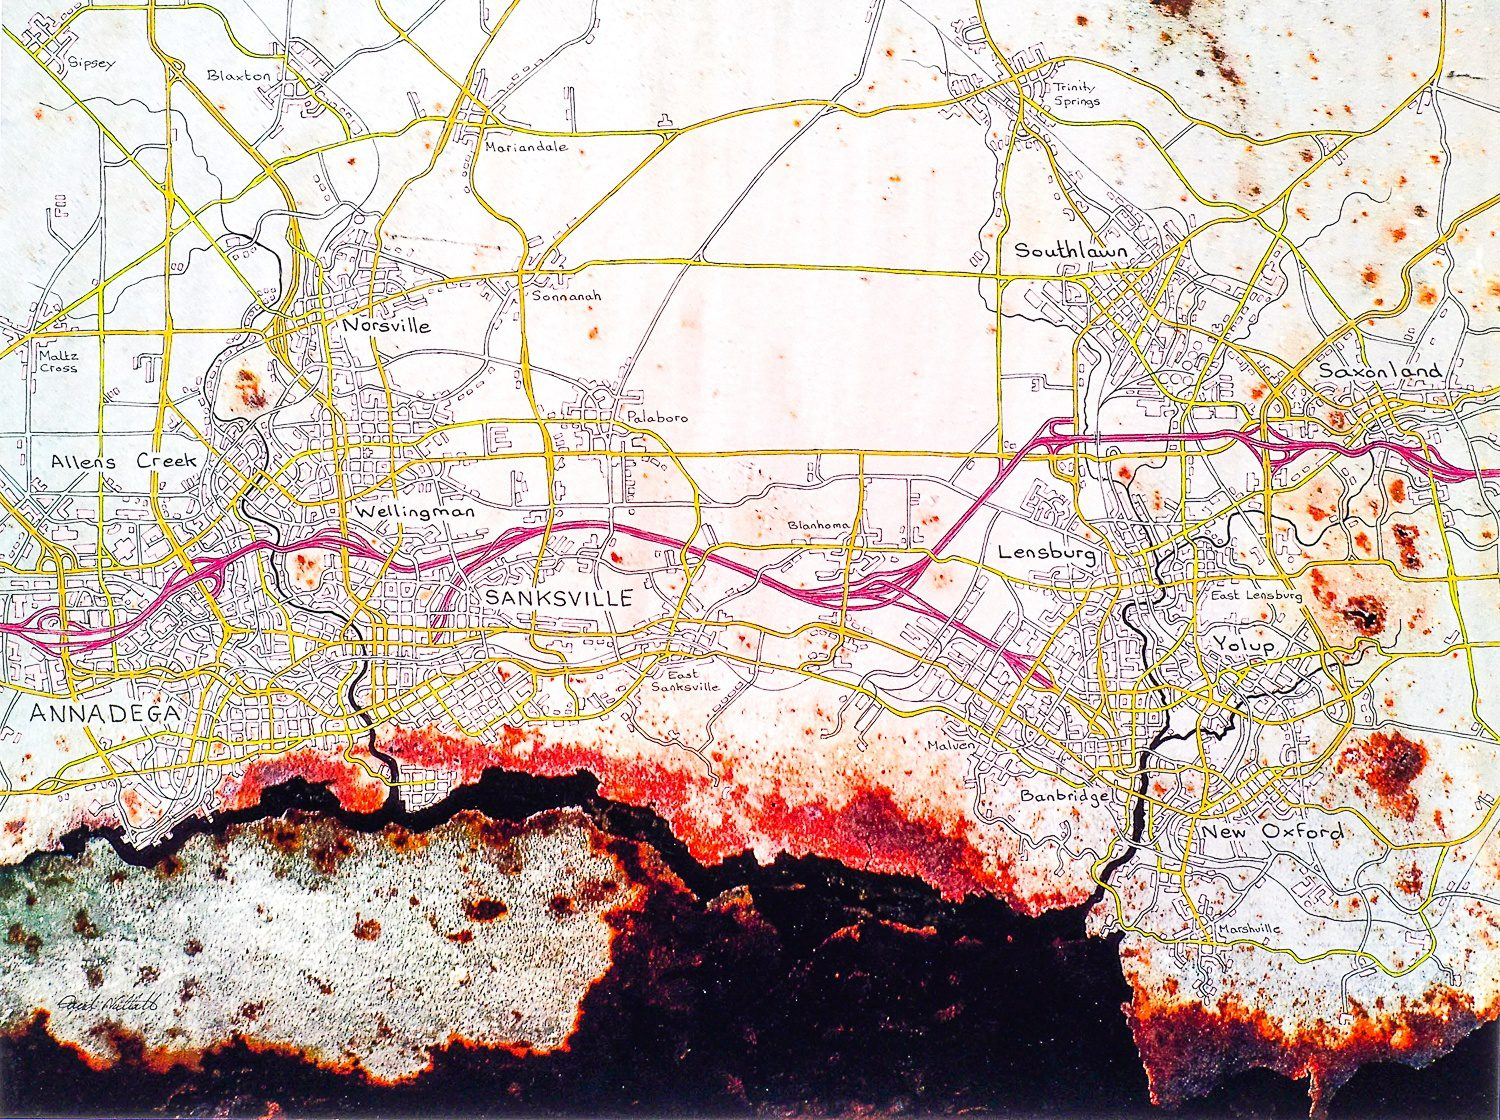 Sanksville and Annadega: Set on the Florida Panhandle - pen and coloured pencil on a photograph of part of Lowe Mill